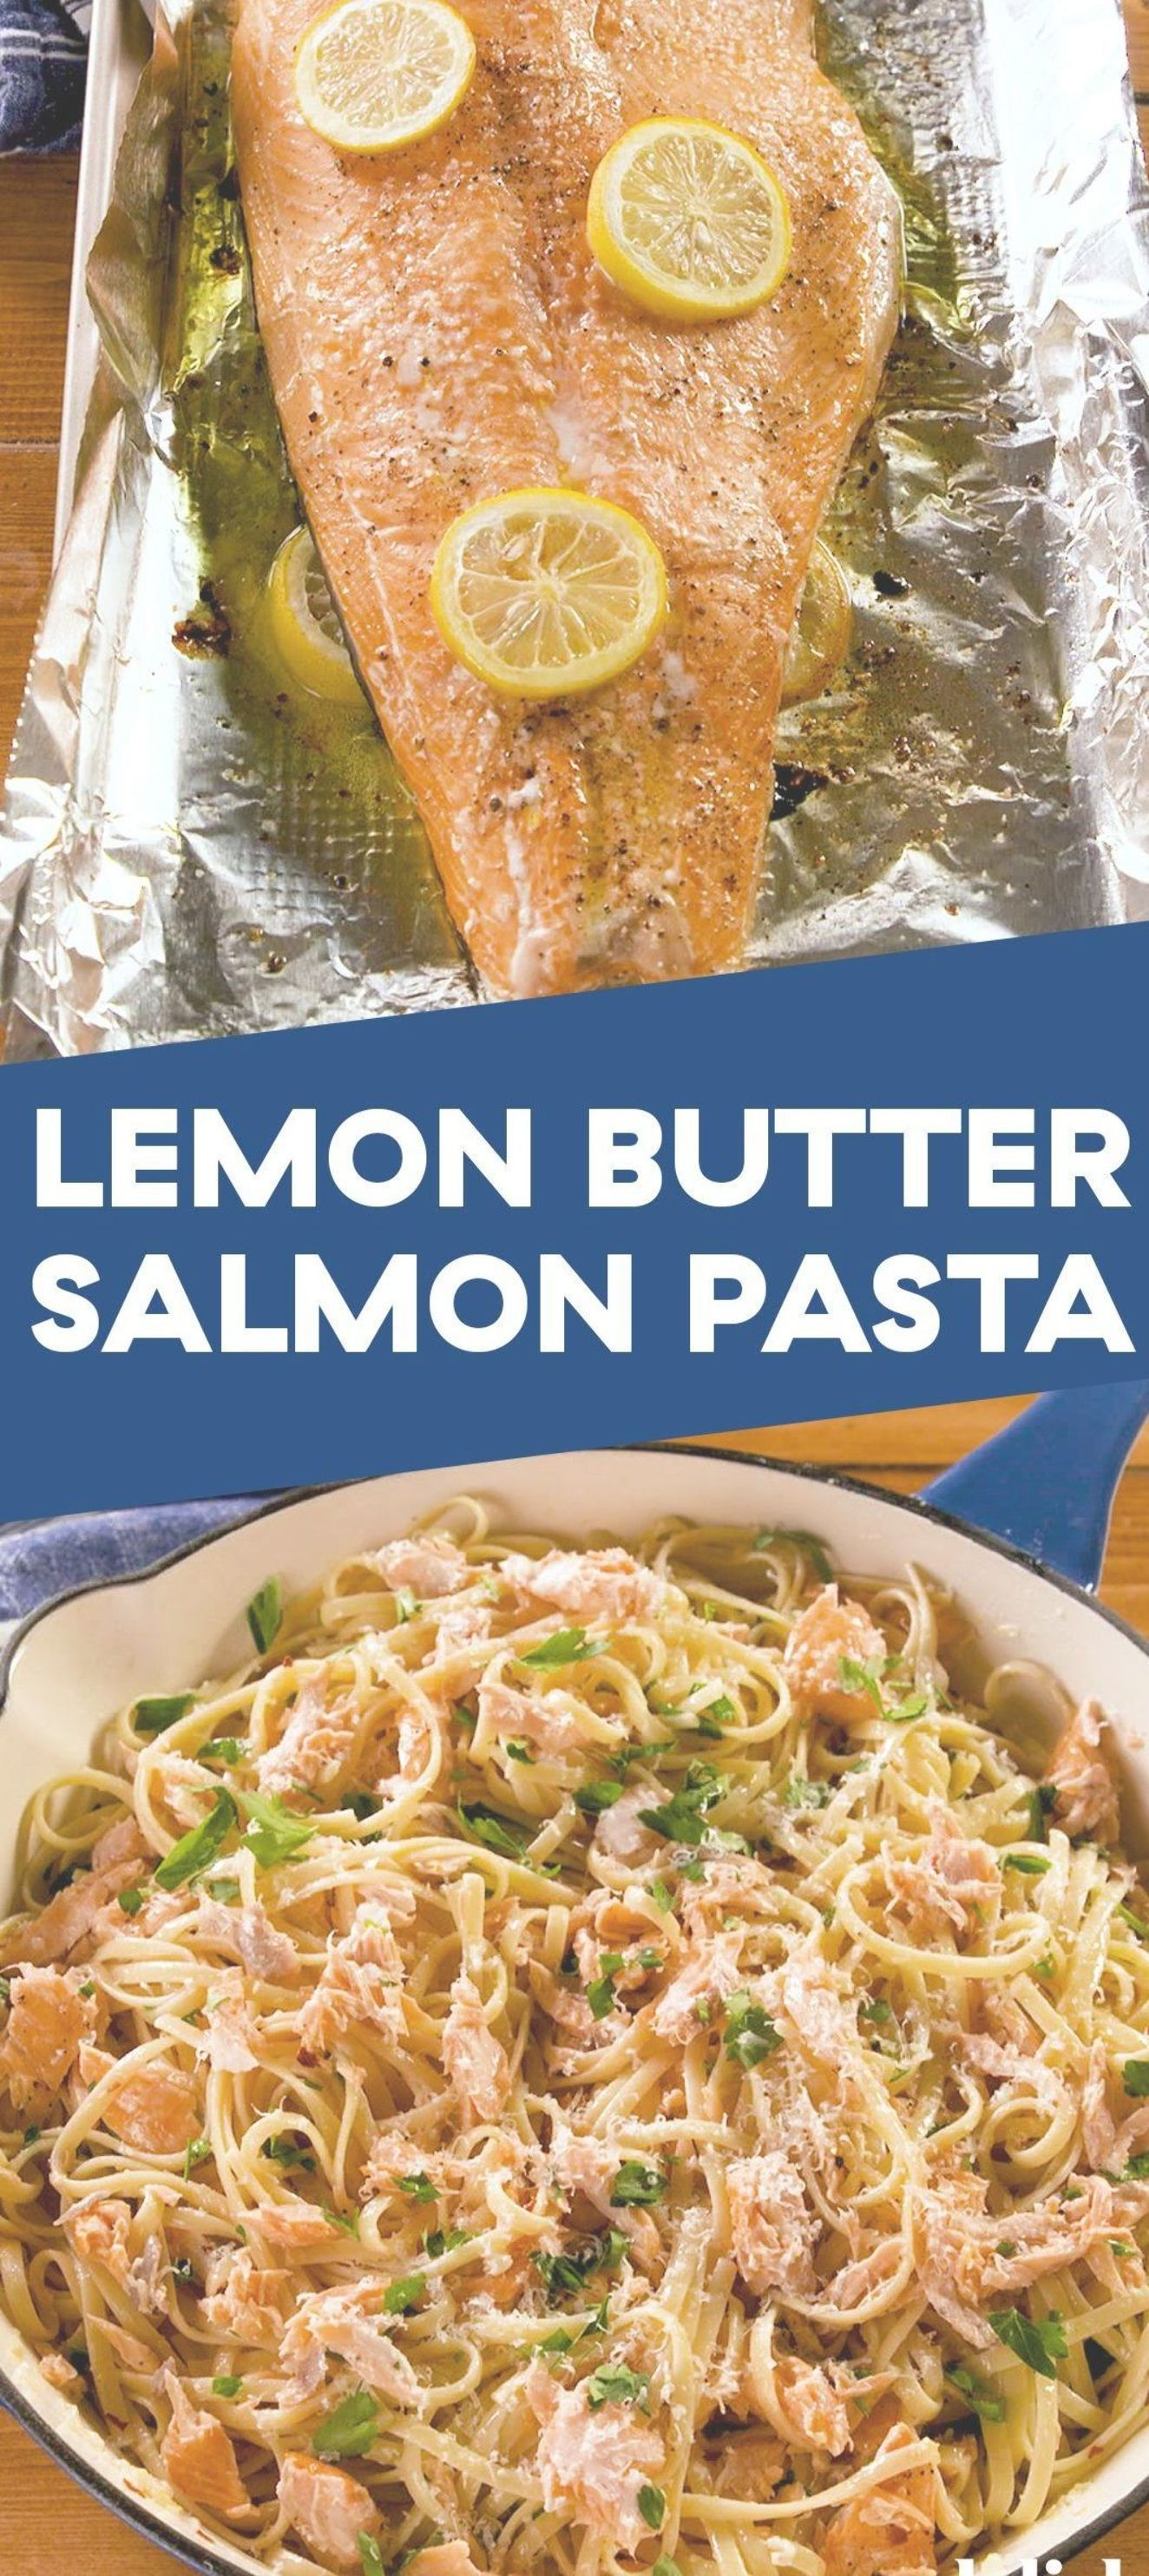 Lemon Butter Salmon Pasta is the fanciest comfort food weve ever had Get the recipe at